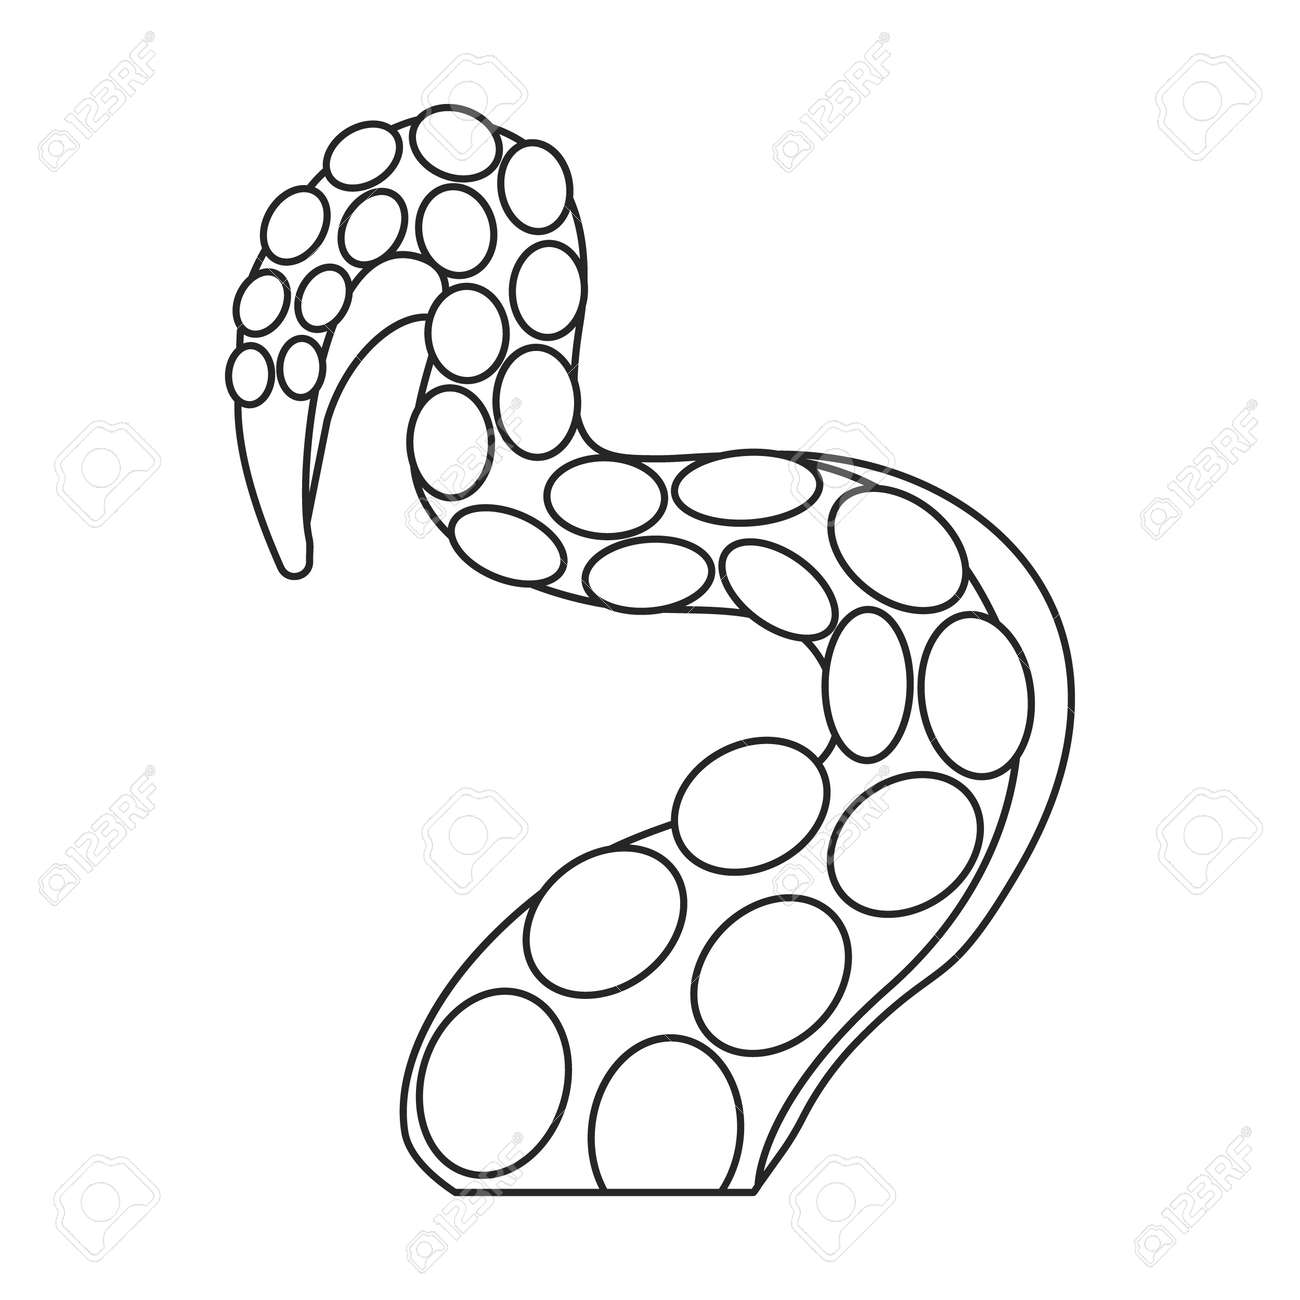 Octopus tentacle vector outline icon. Vector illustration seafood on white background. Isolated outline illustration icon of octopus tentacle. - 167978028